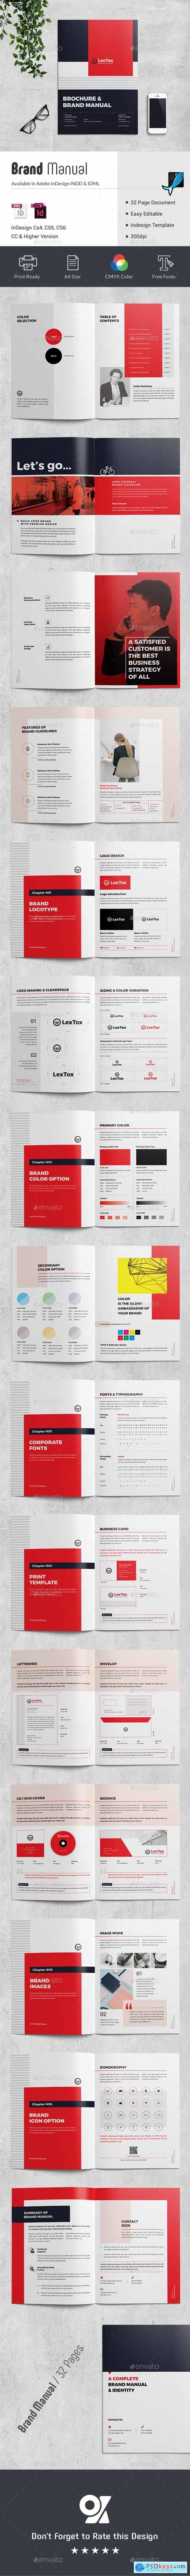 GraphicRiver Brand Manual